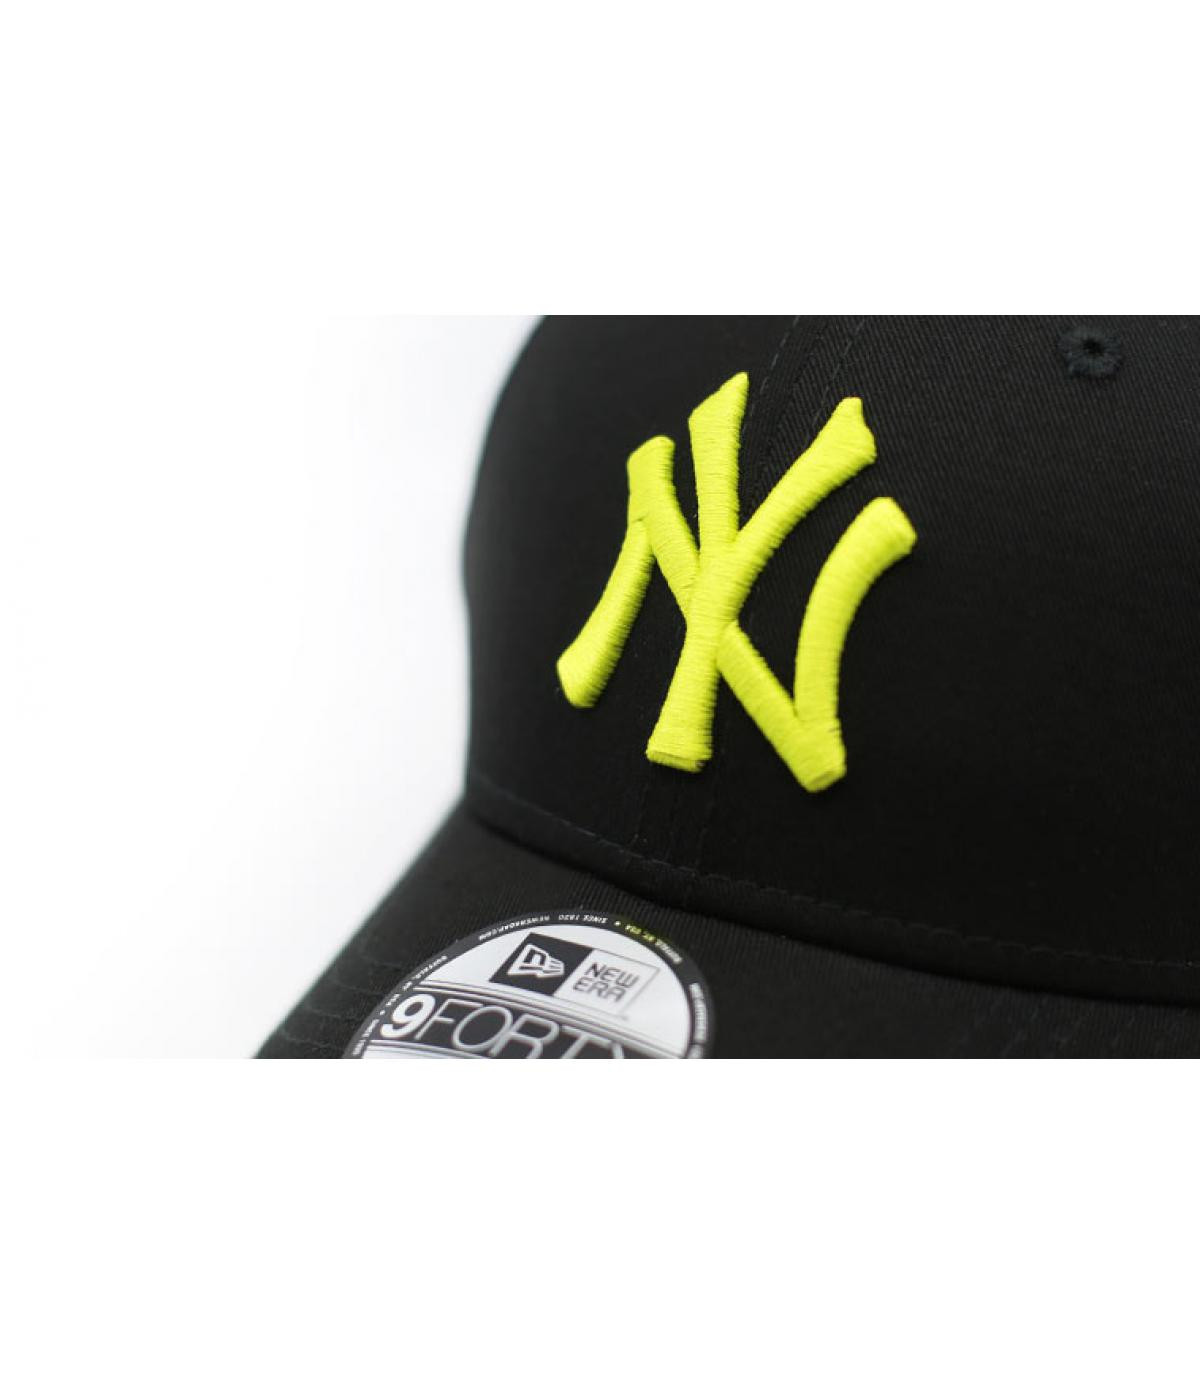 Details Kids League Ess NY 9Forty black cyber green - afbeeling 3